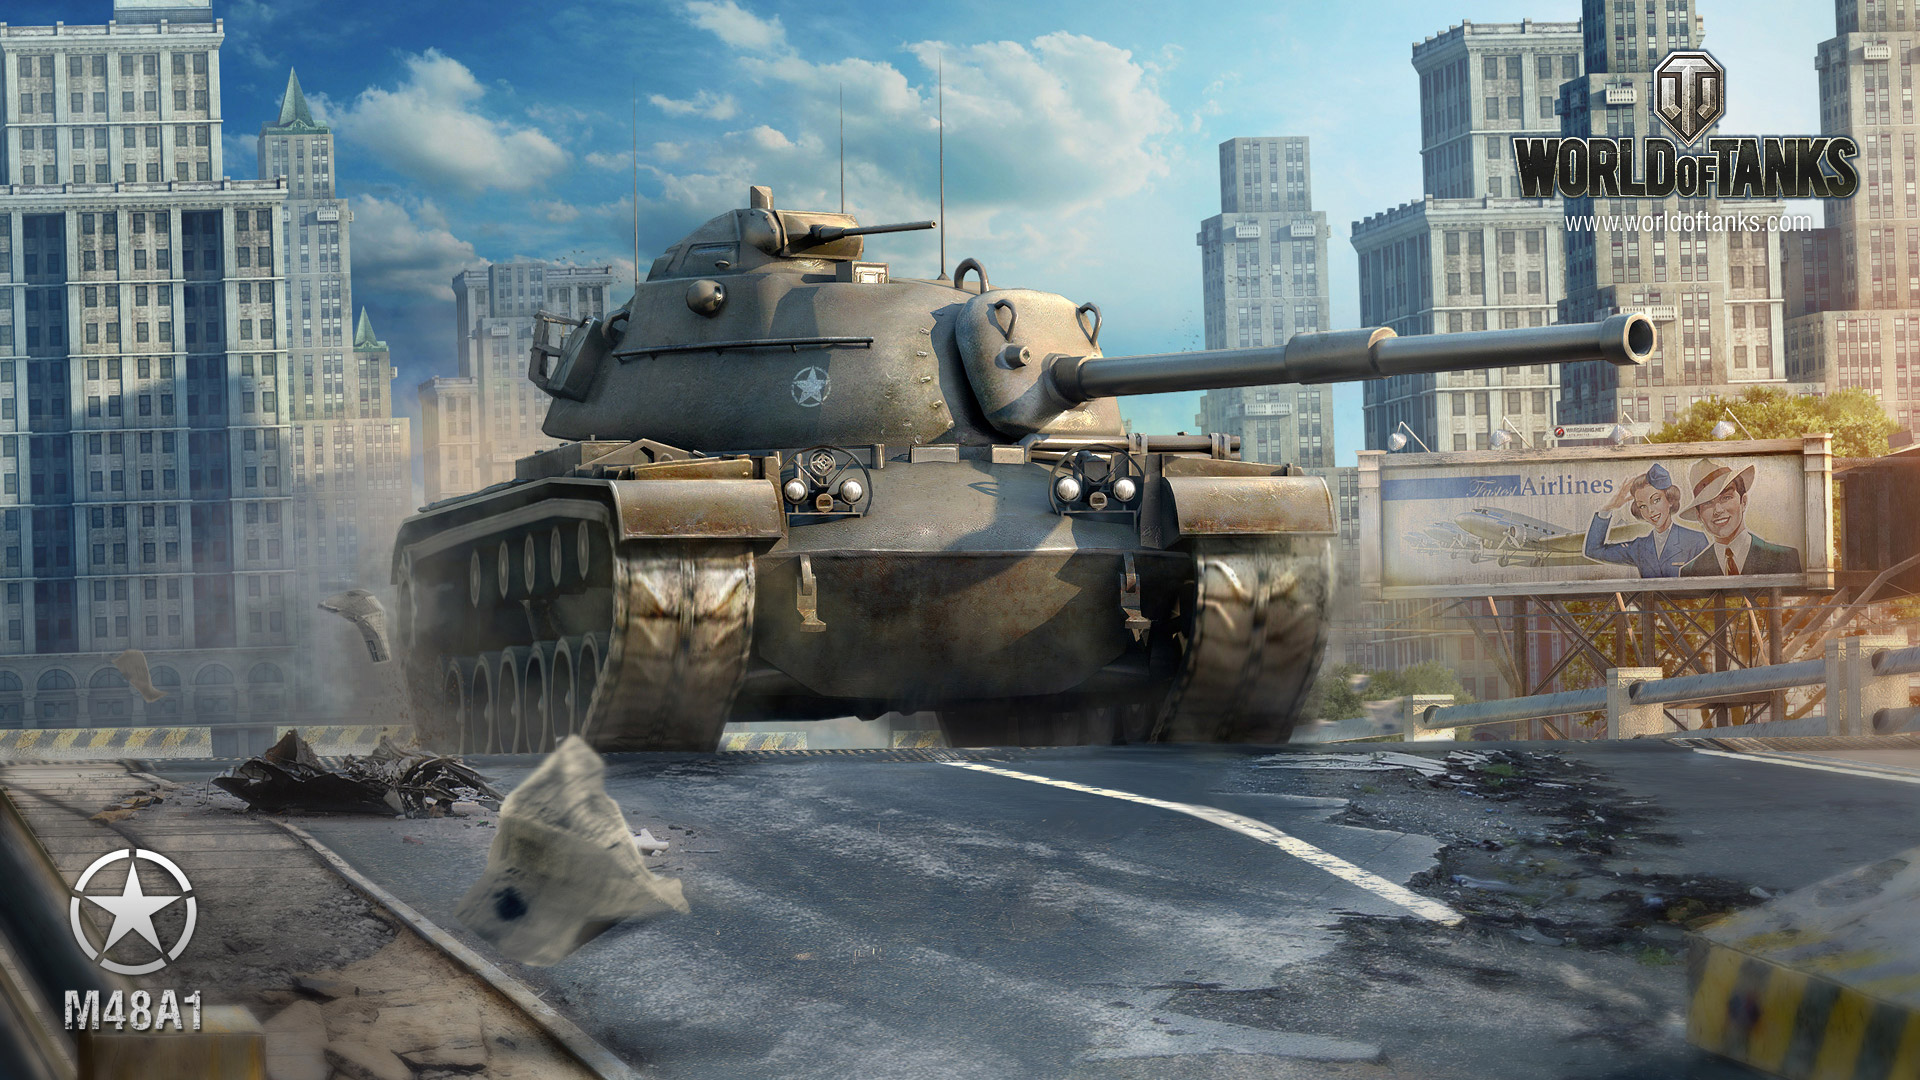 World of Tanks wallpaper 4